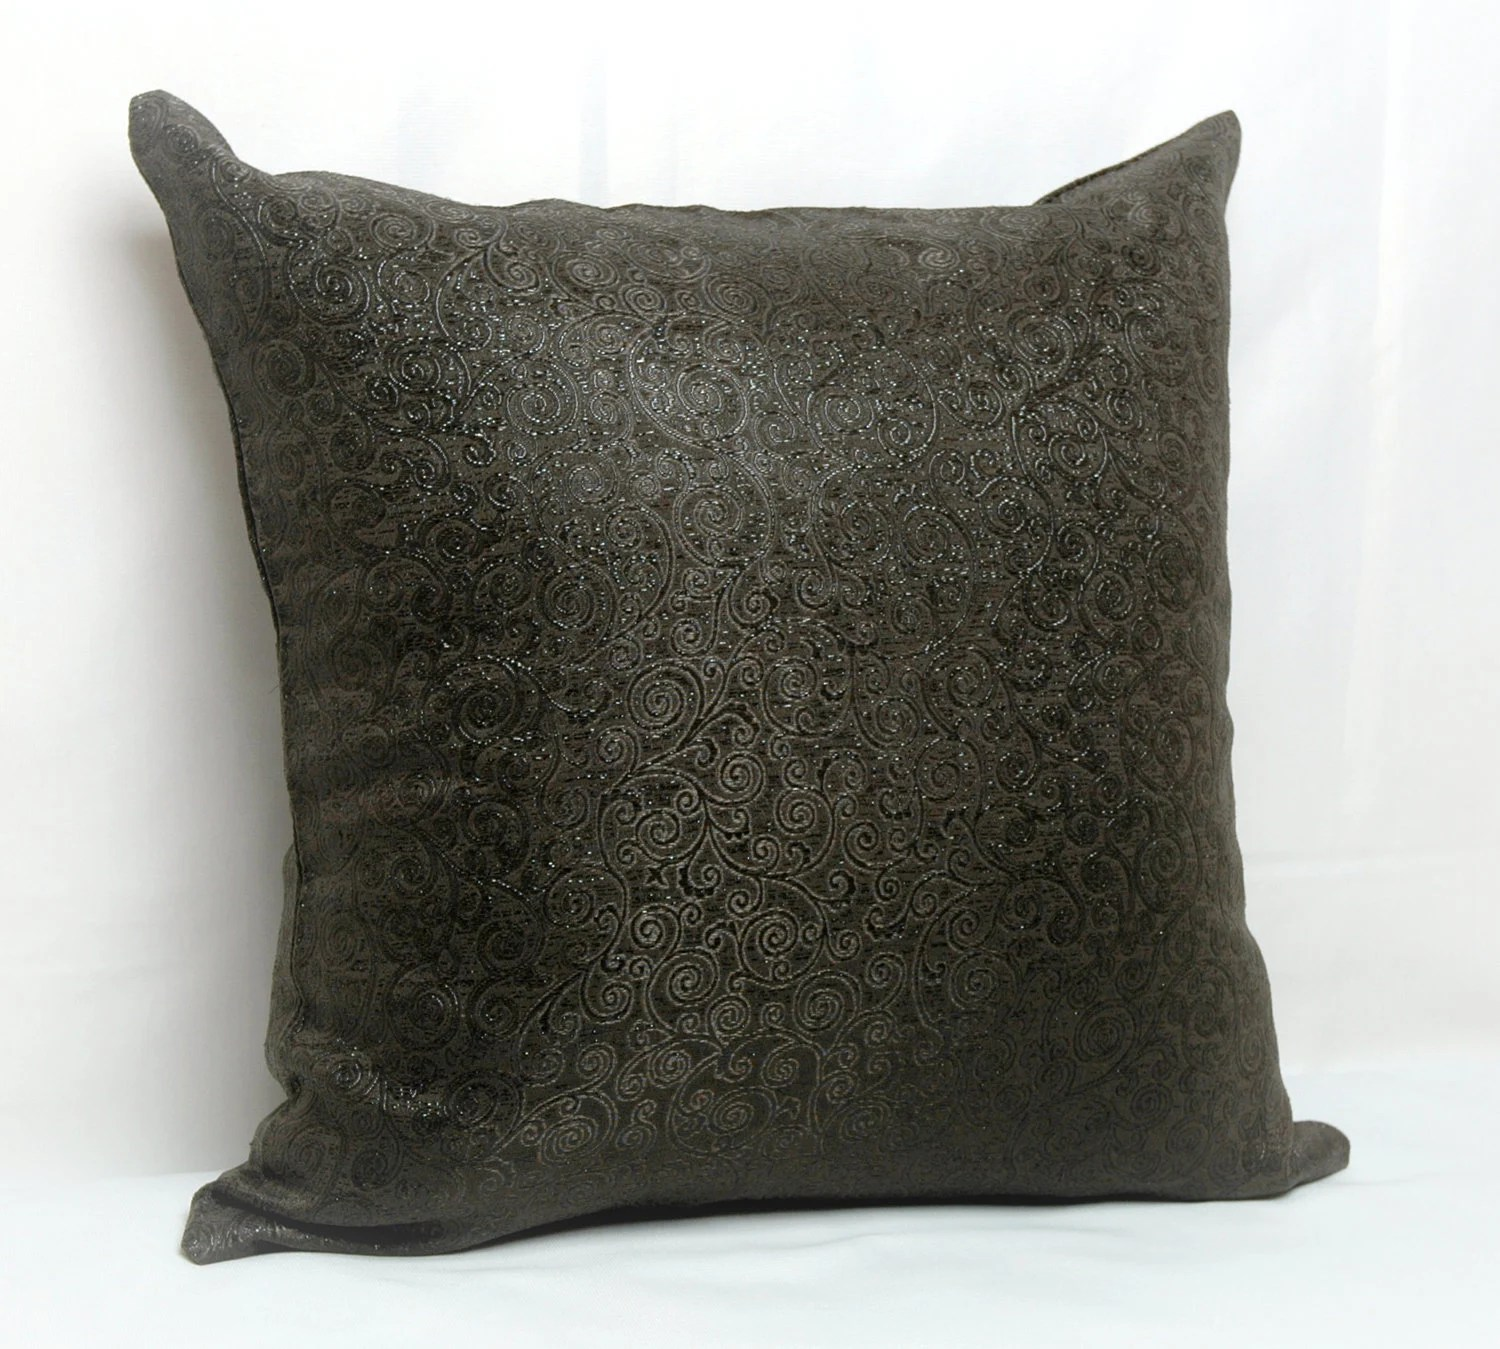 Dark Brown Floral Jacquard Brocades Shiny Decorative Pillow Case , Cushion Cover 16x16 inch , 18x18 inch - MyveraLinen